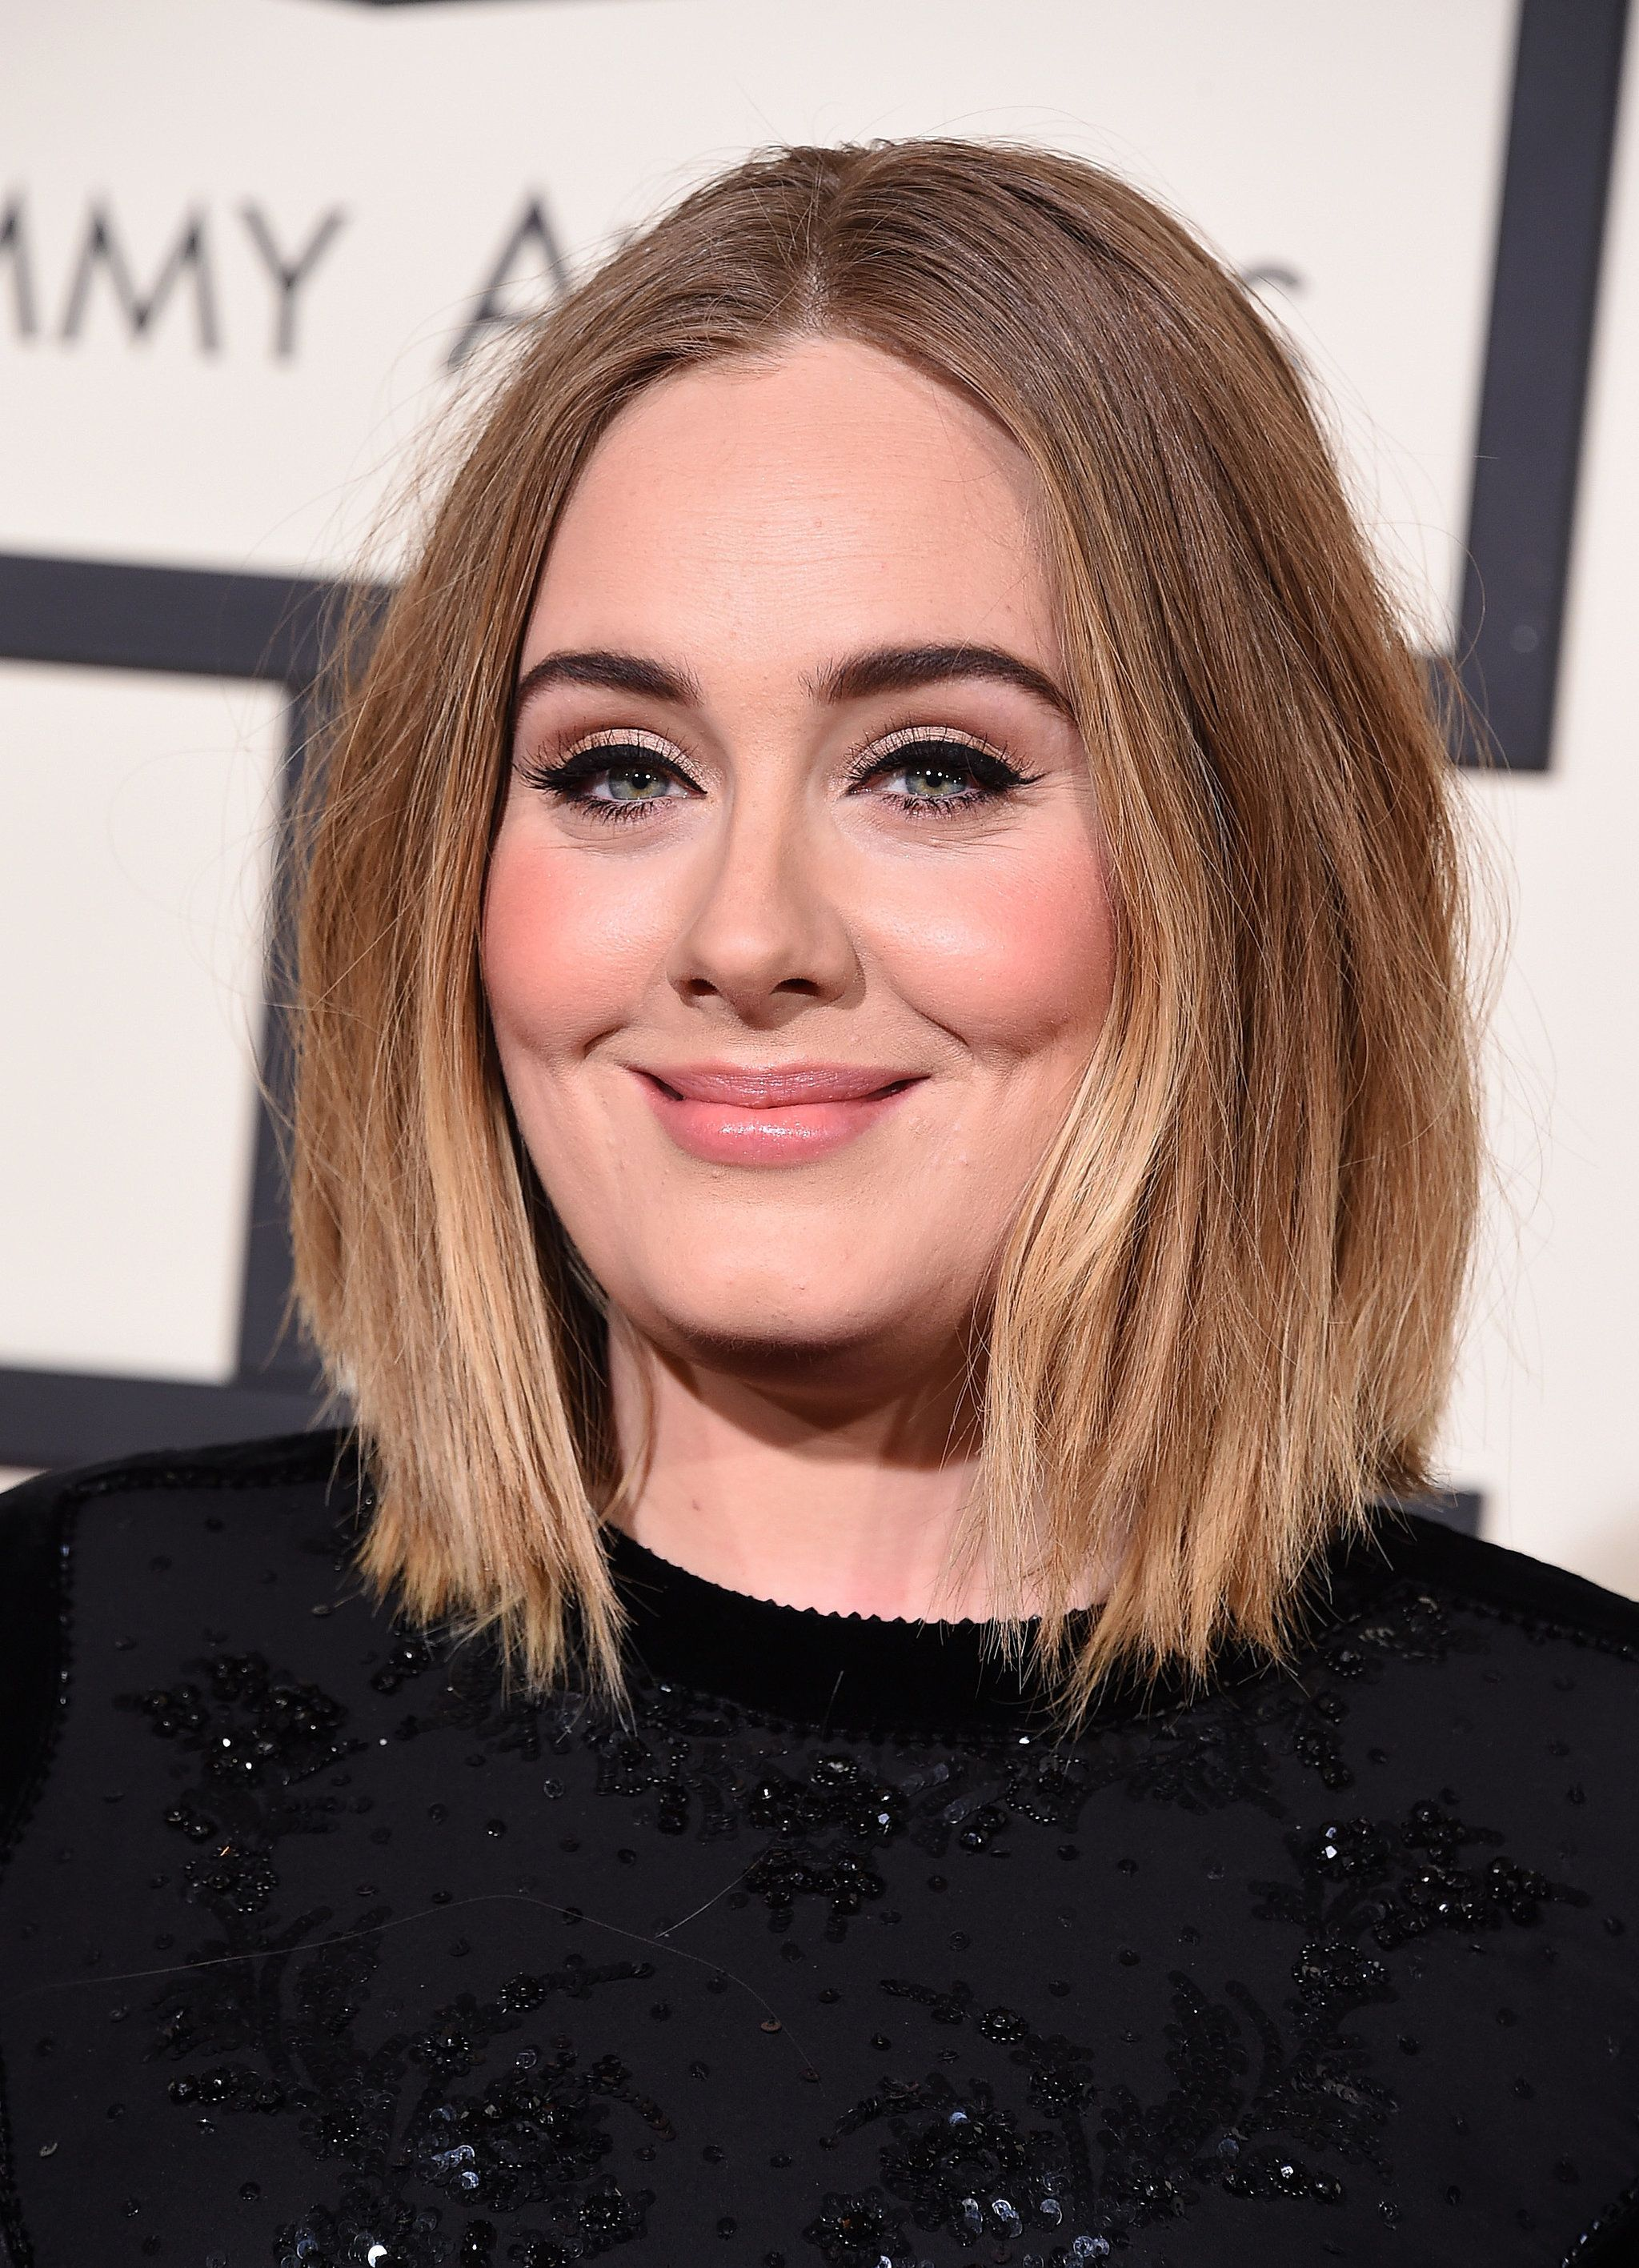 Adele Adele Hair Color Adele Hair Thick Hair Styles